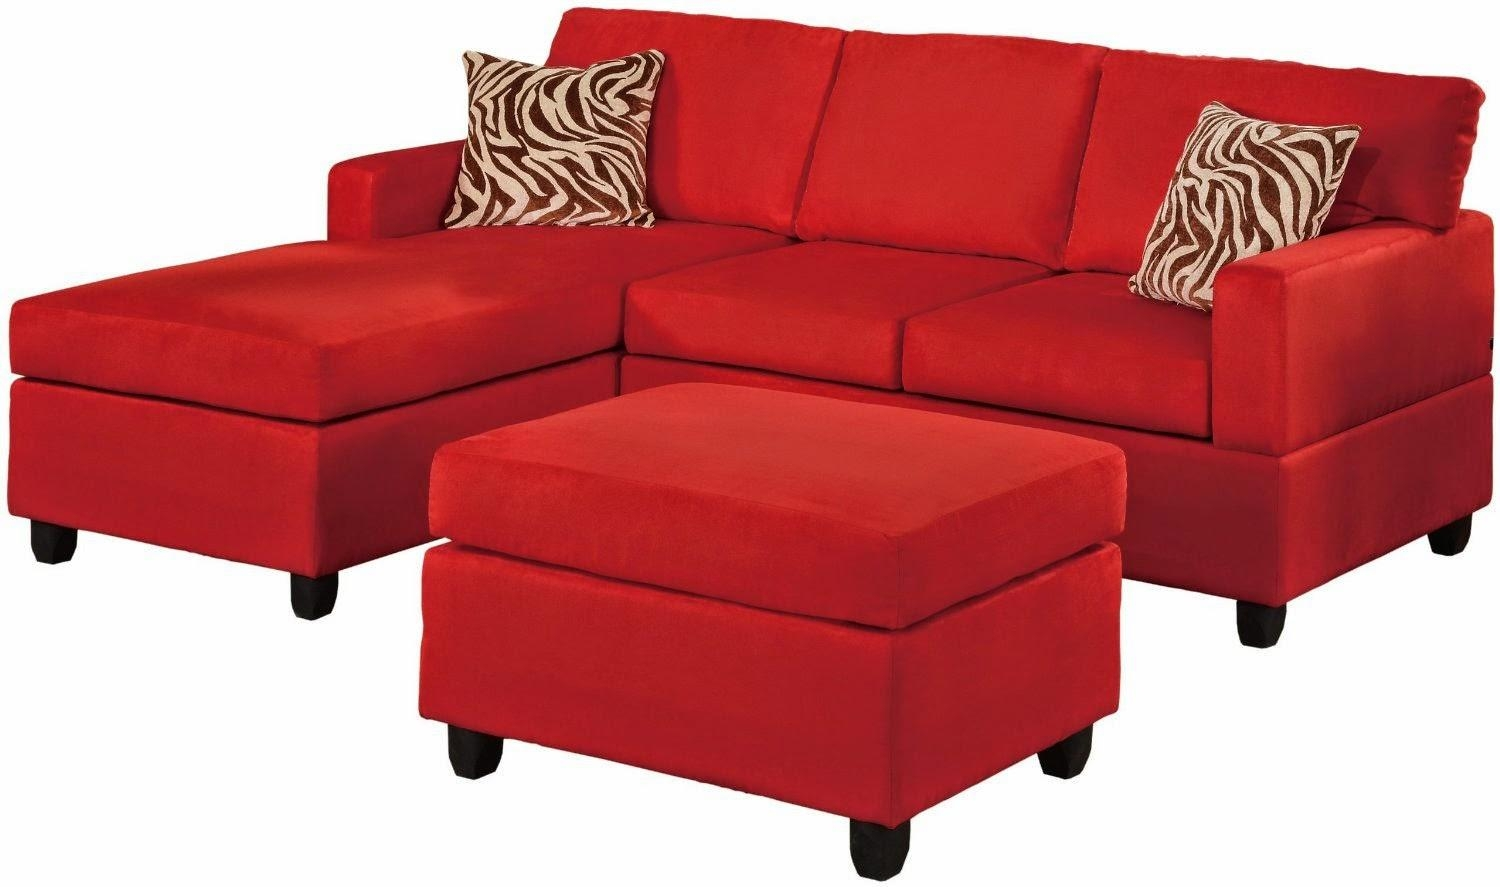 Red Sectional Sofas Cheap | Centerfieldbar In Red Sectional Sleeper Sofas (Image 12 of 22)